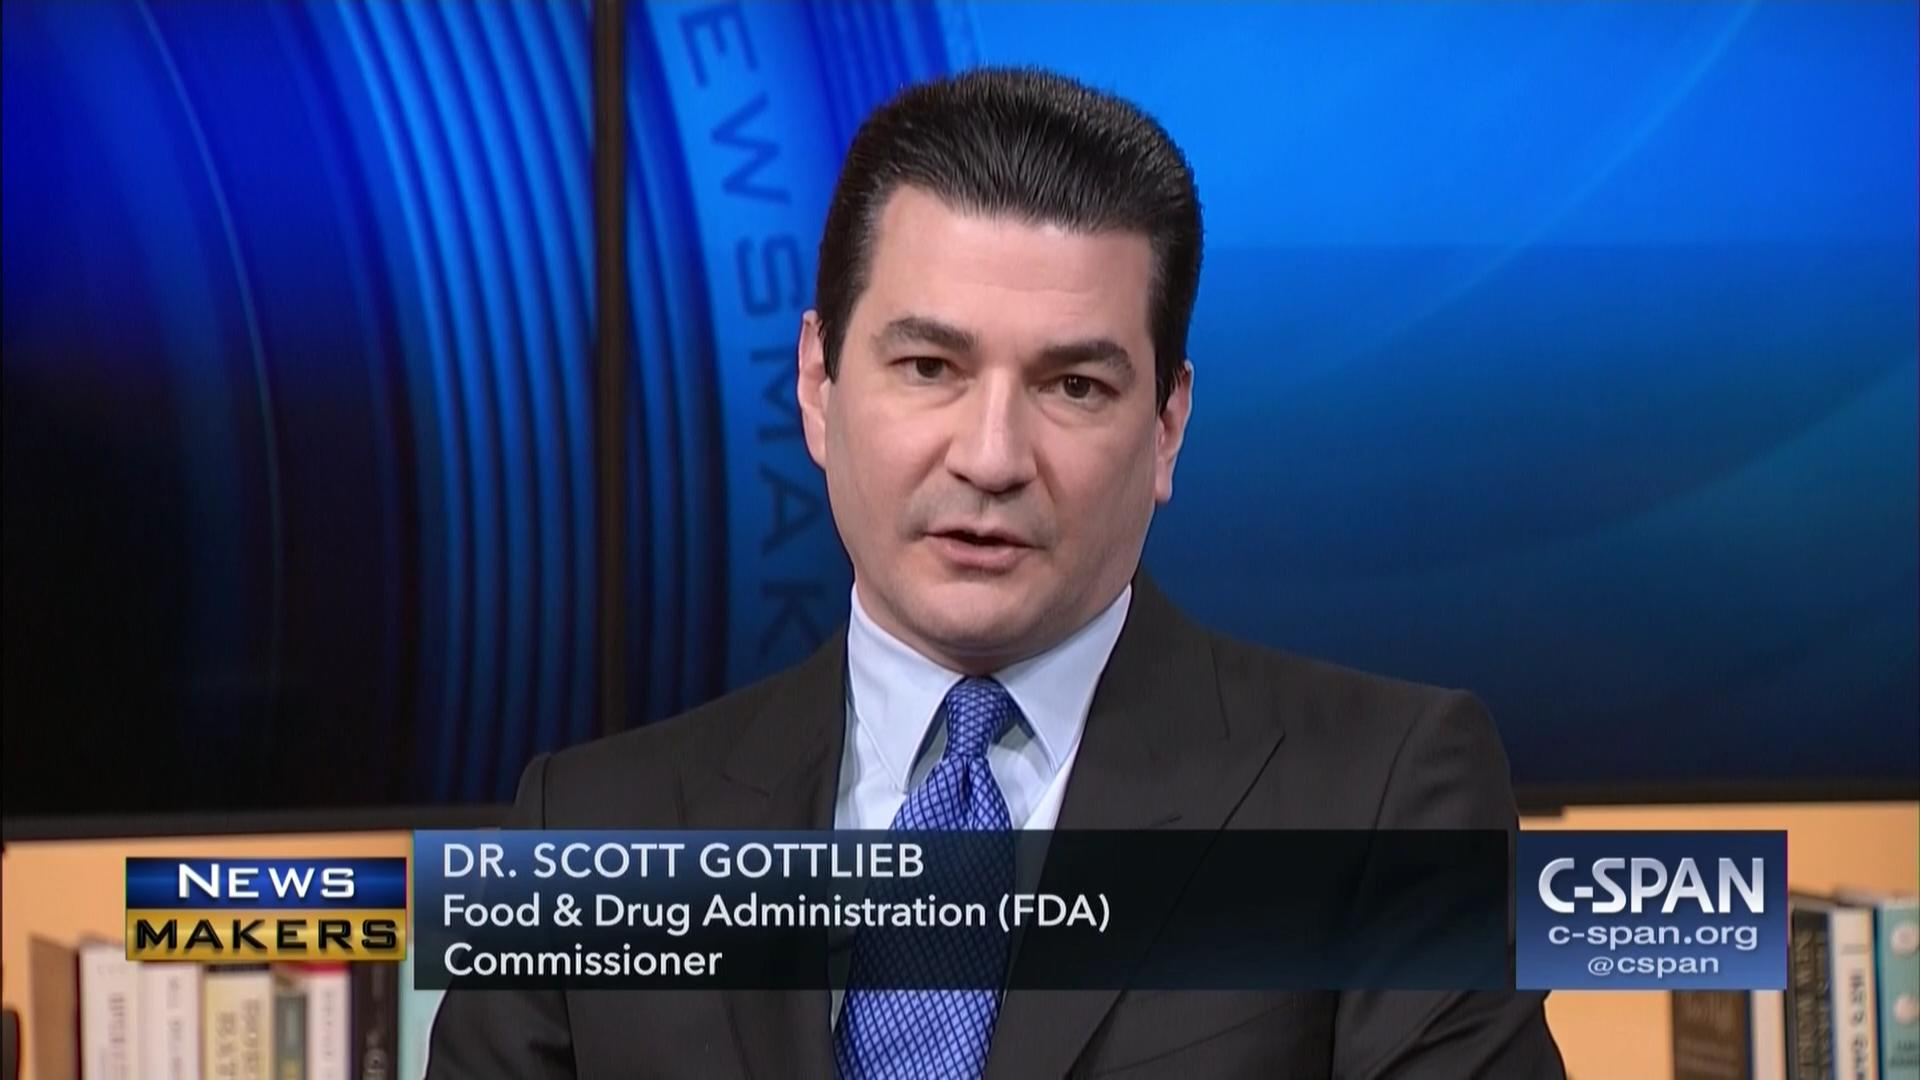 newsmakers scott gottlieb apr 6 2018 video c spanorg